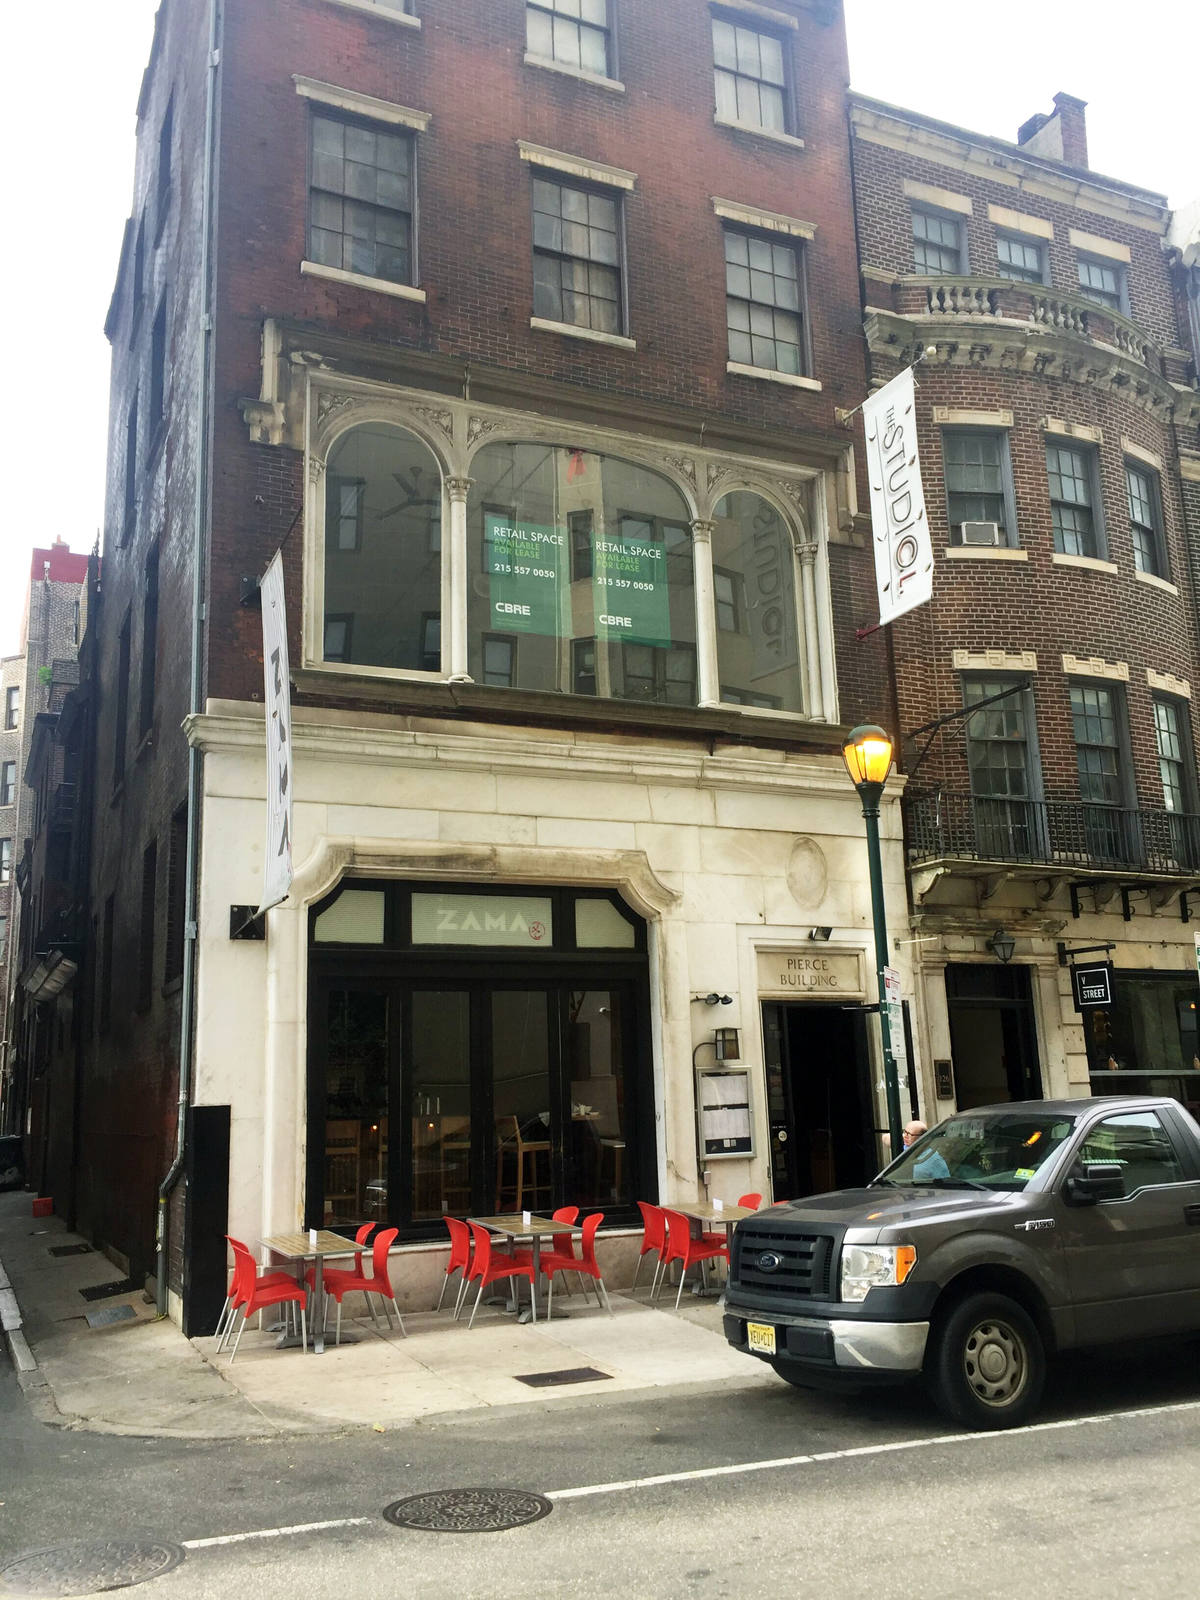 CBRE Retail128 S 19th Street128 S 19th St.  Photo